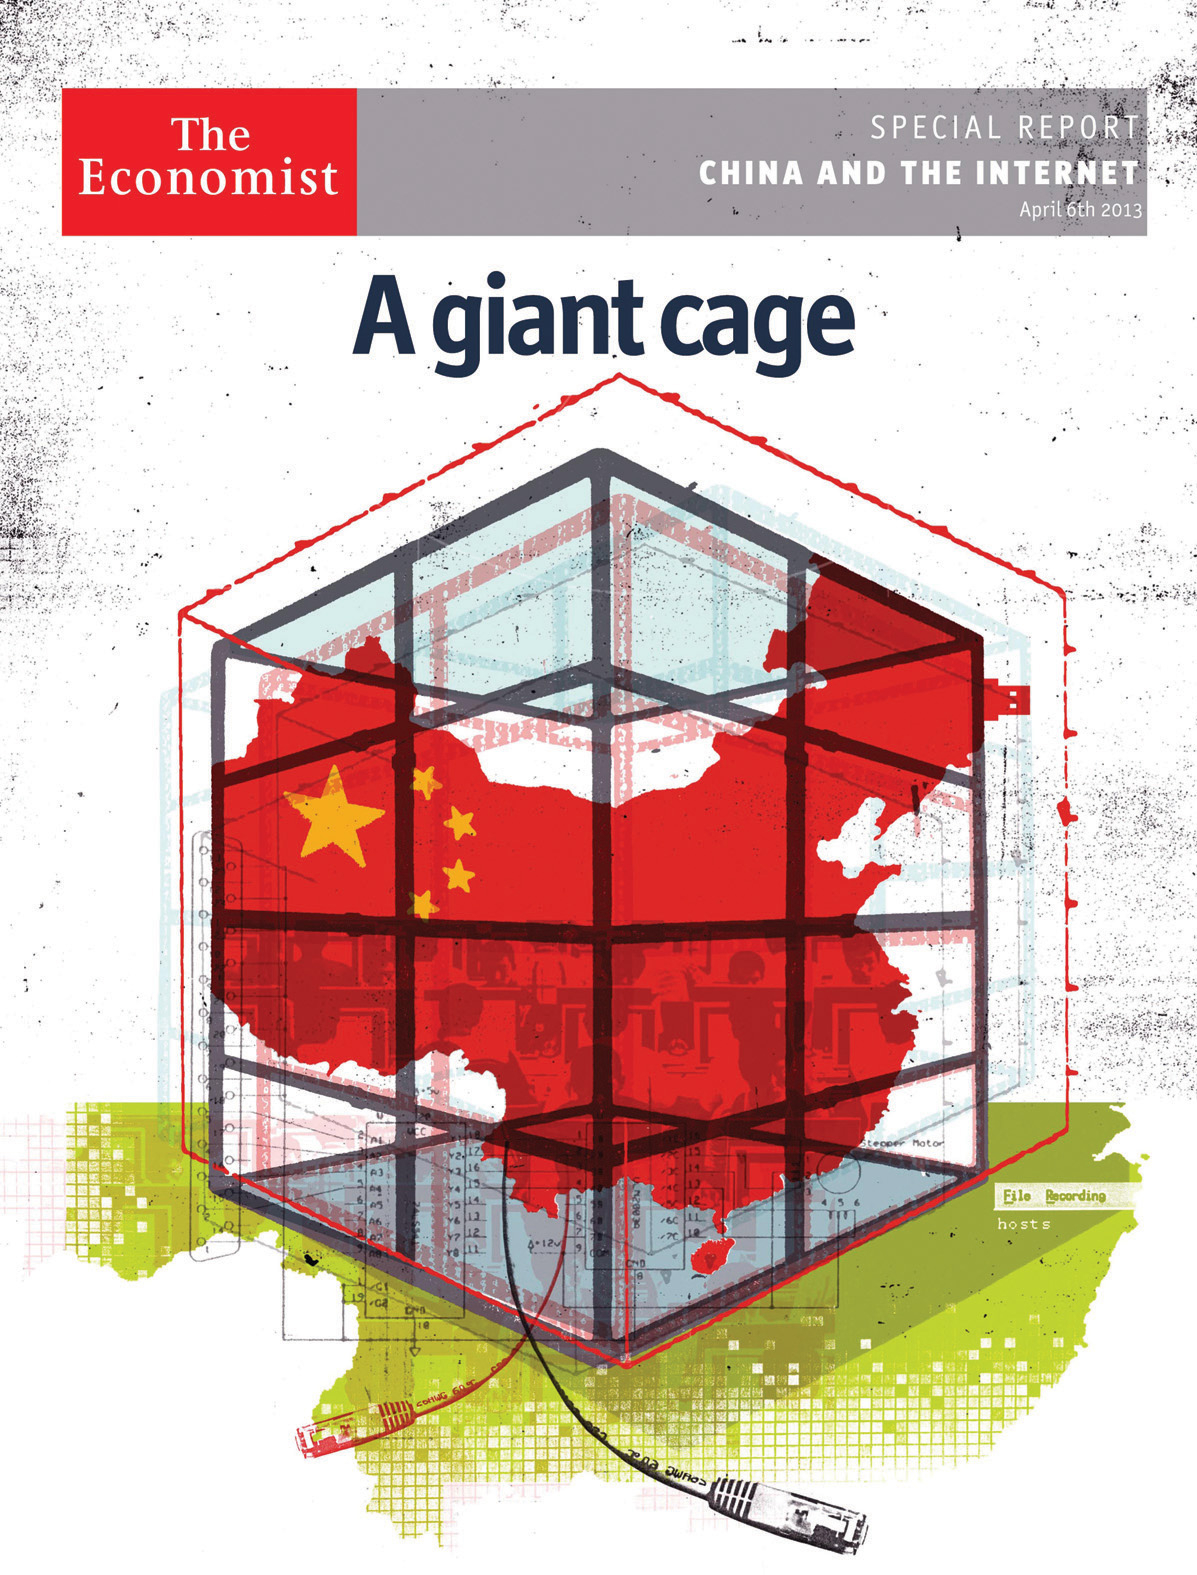 A Giant Cage / The Economist